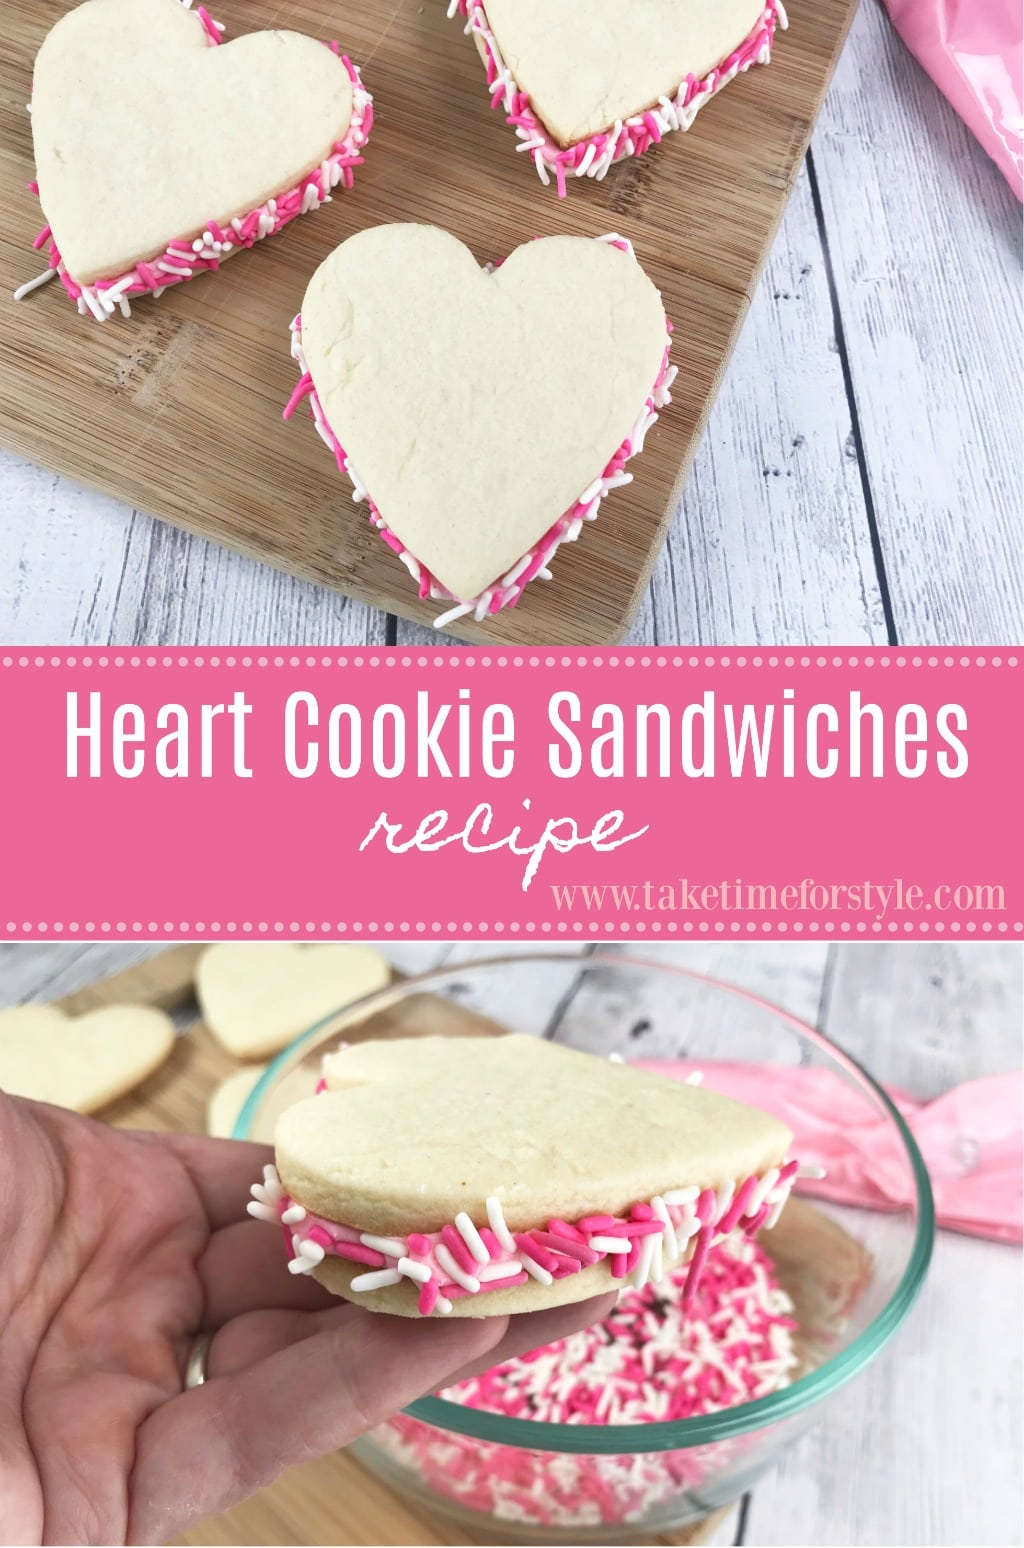 heat cookie sandwiches recipe